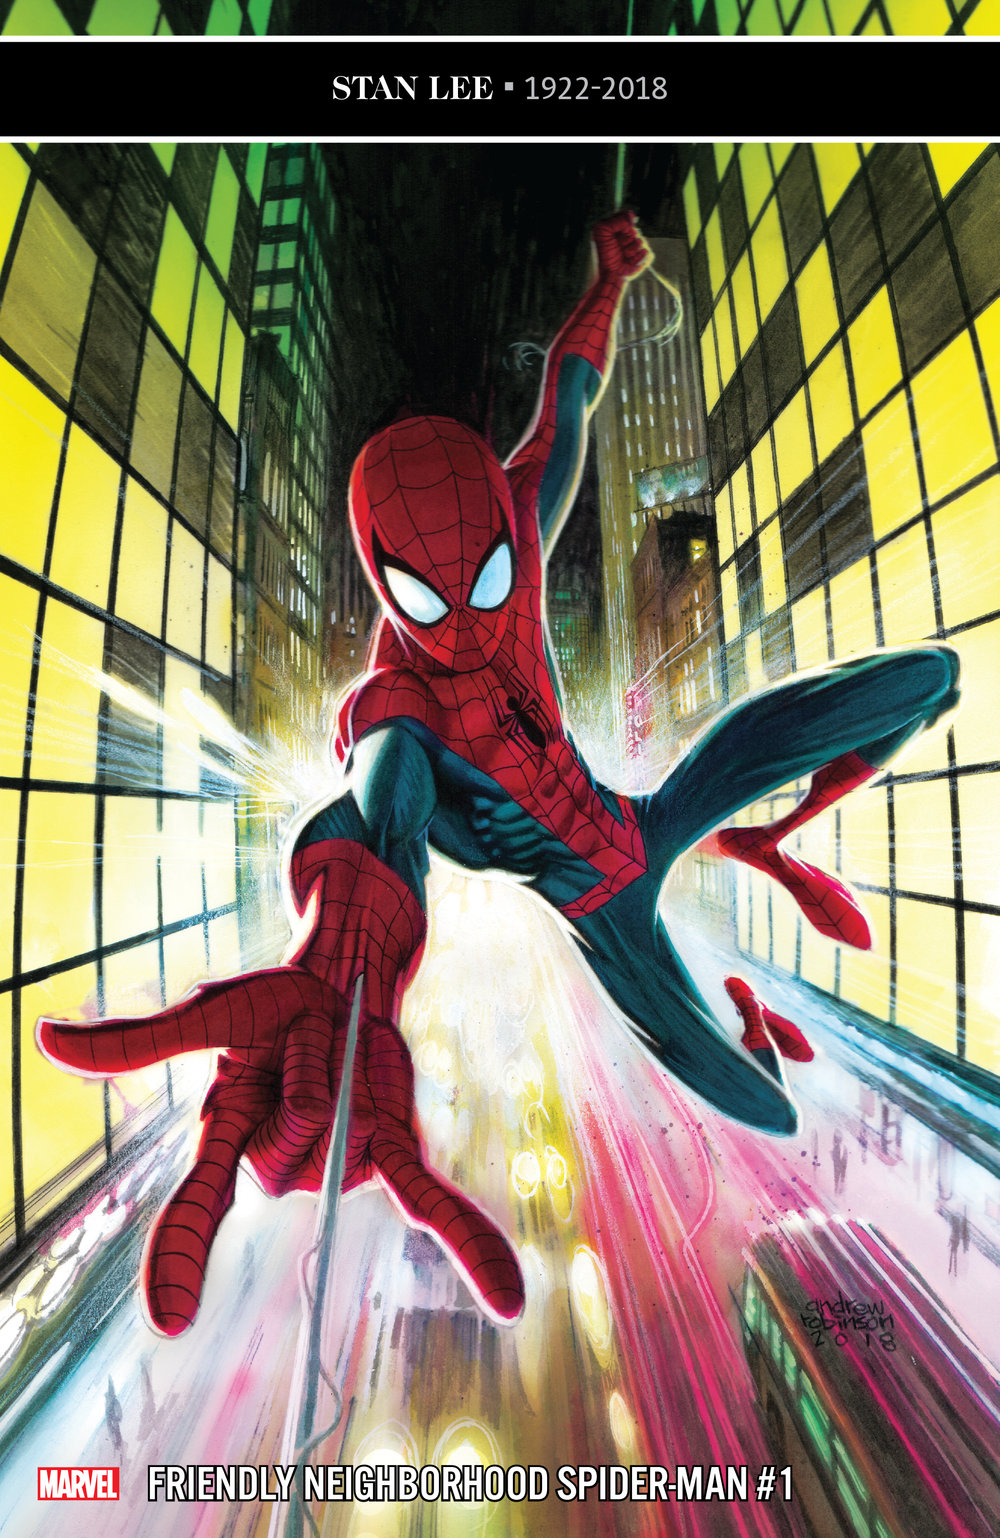 Friendly Neighborhood Spider-Man #1  is out 1/9/2019.